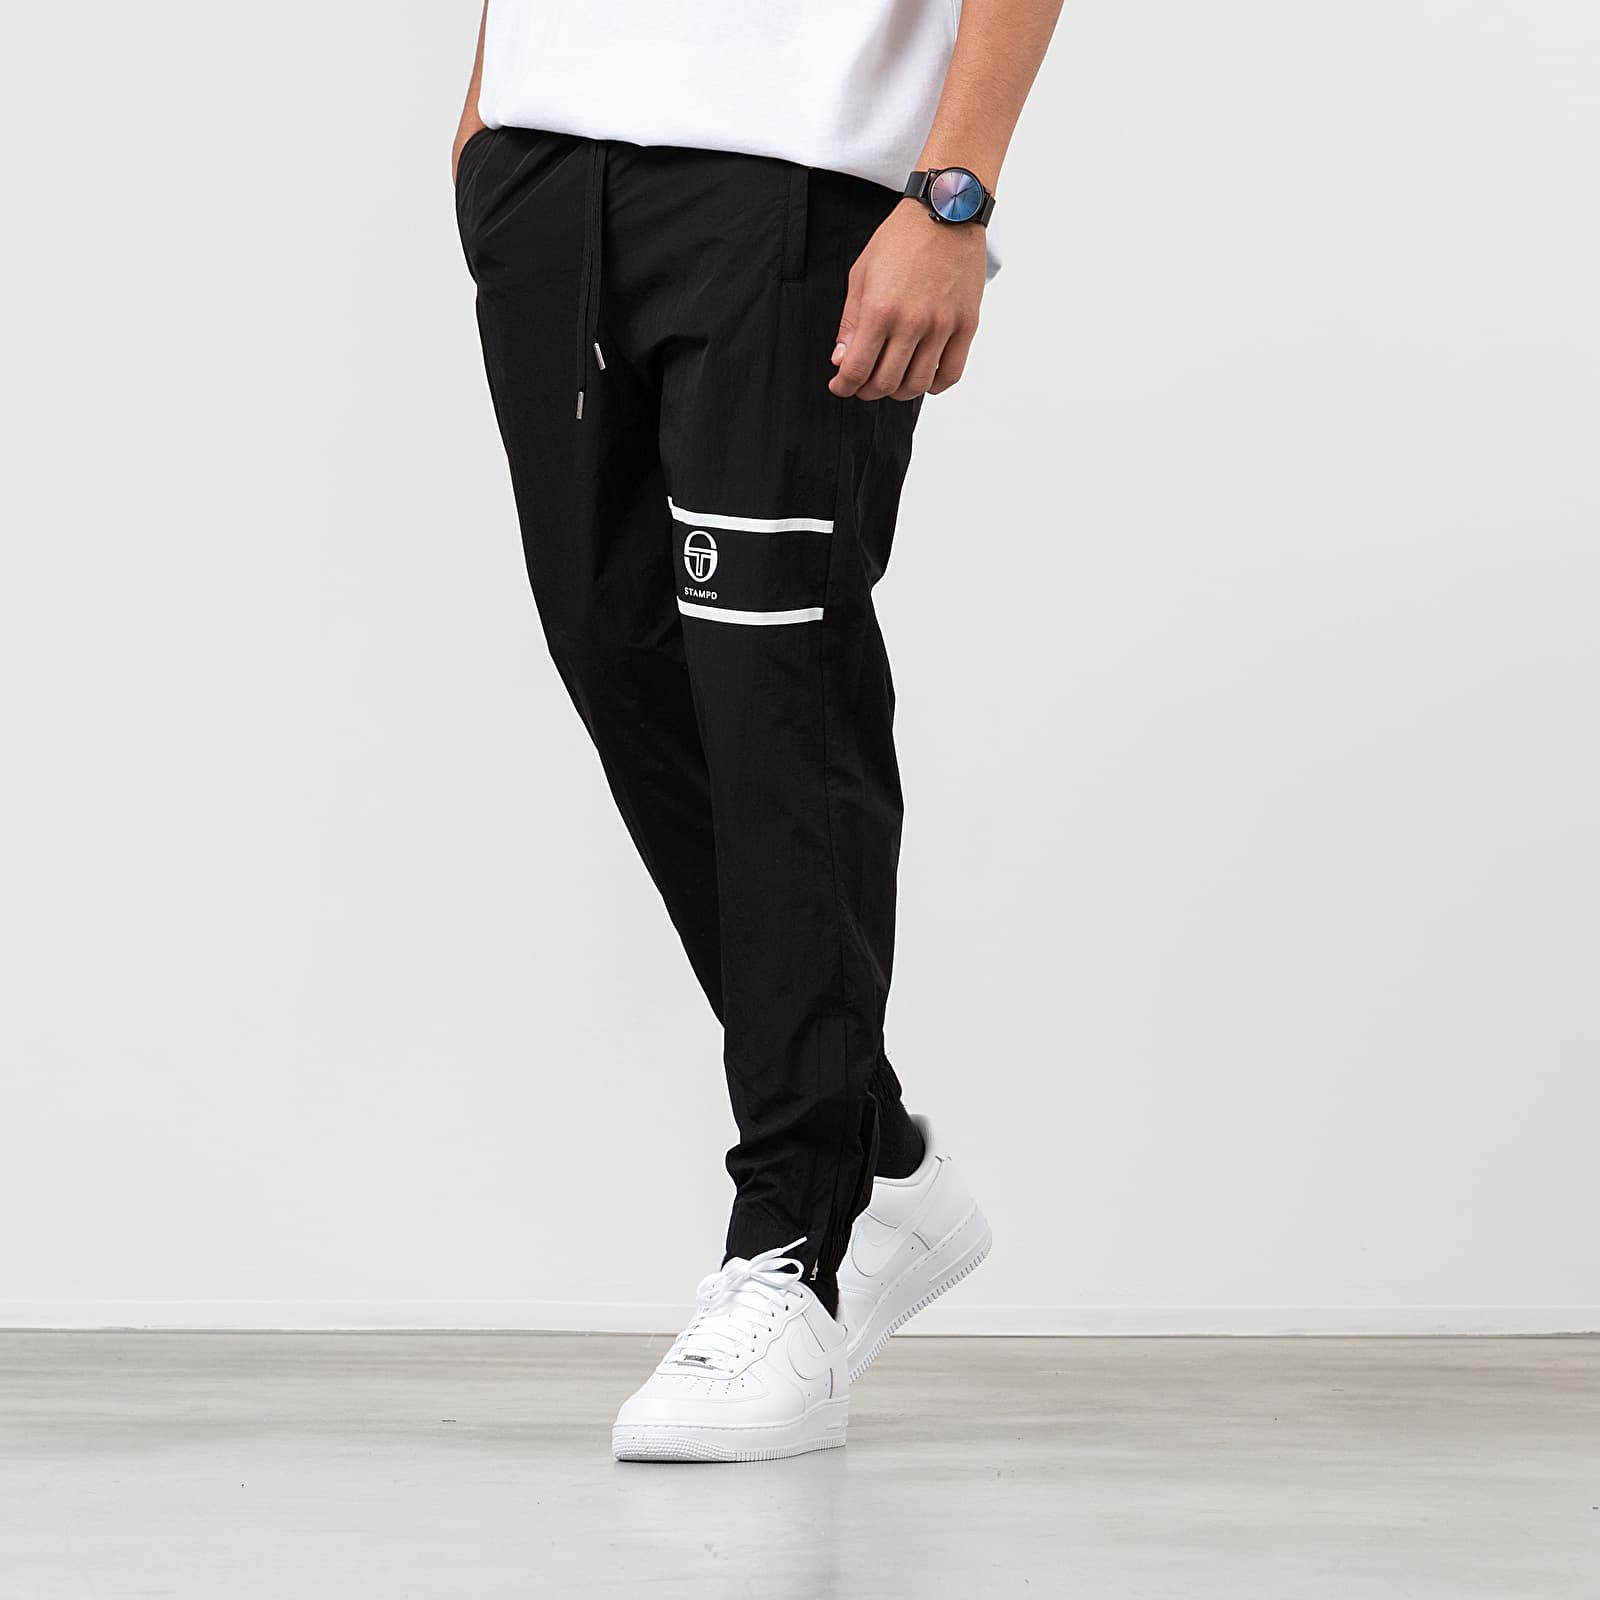 STAMPD x Sergio Tacchini Dedans Track Pants